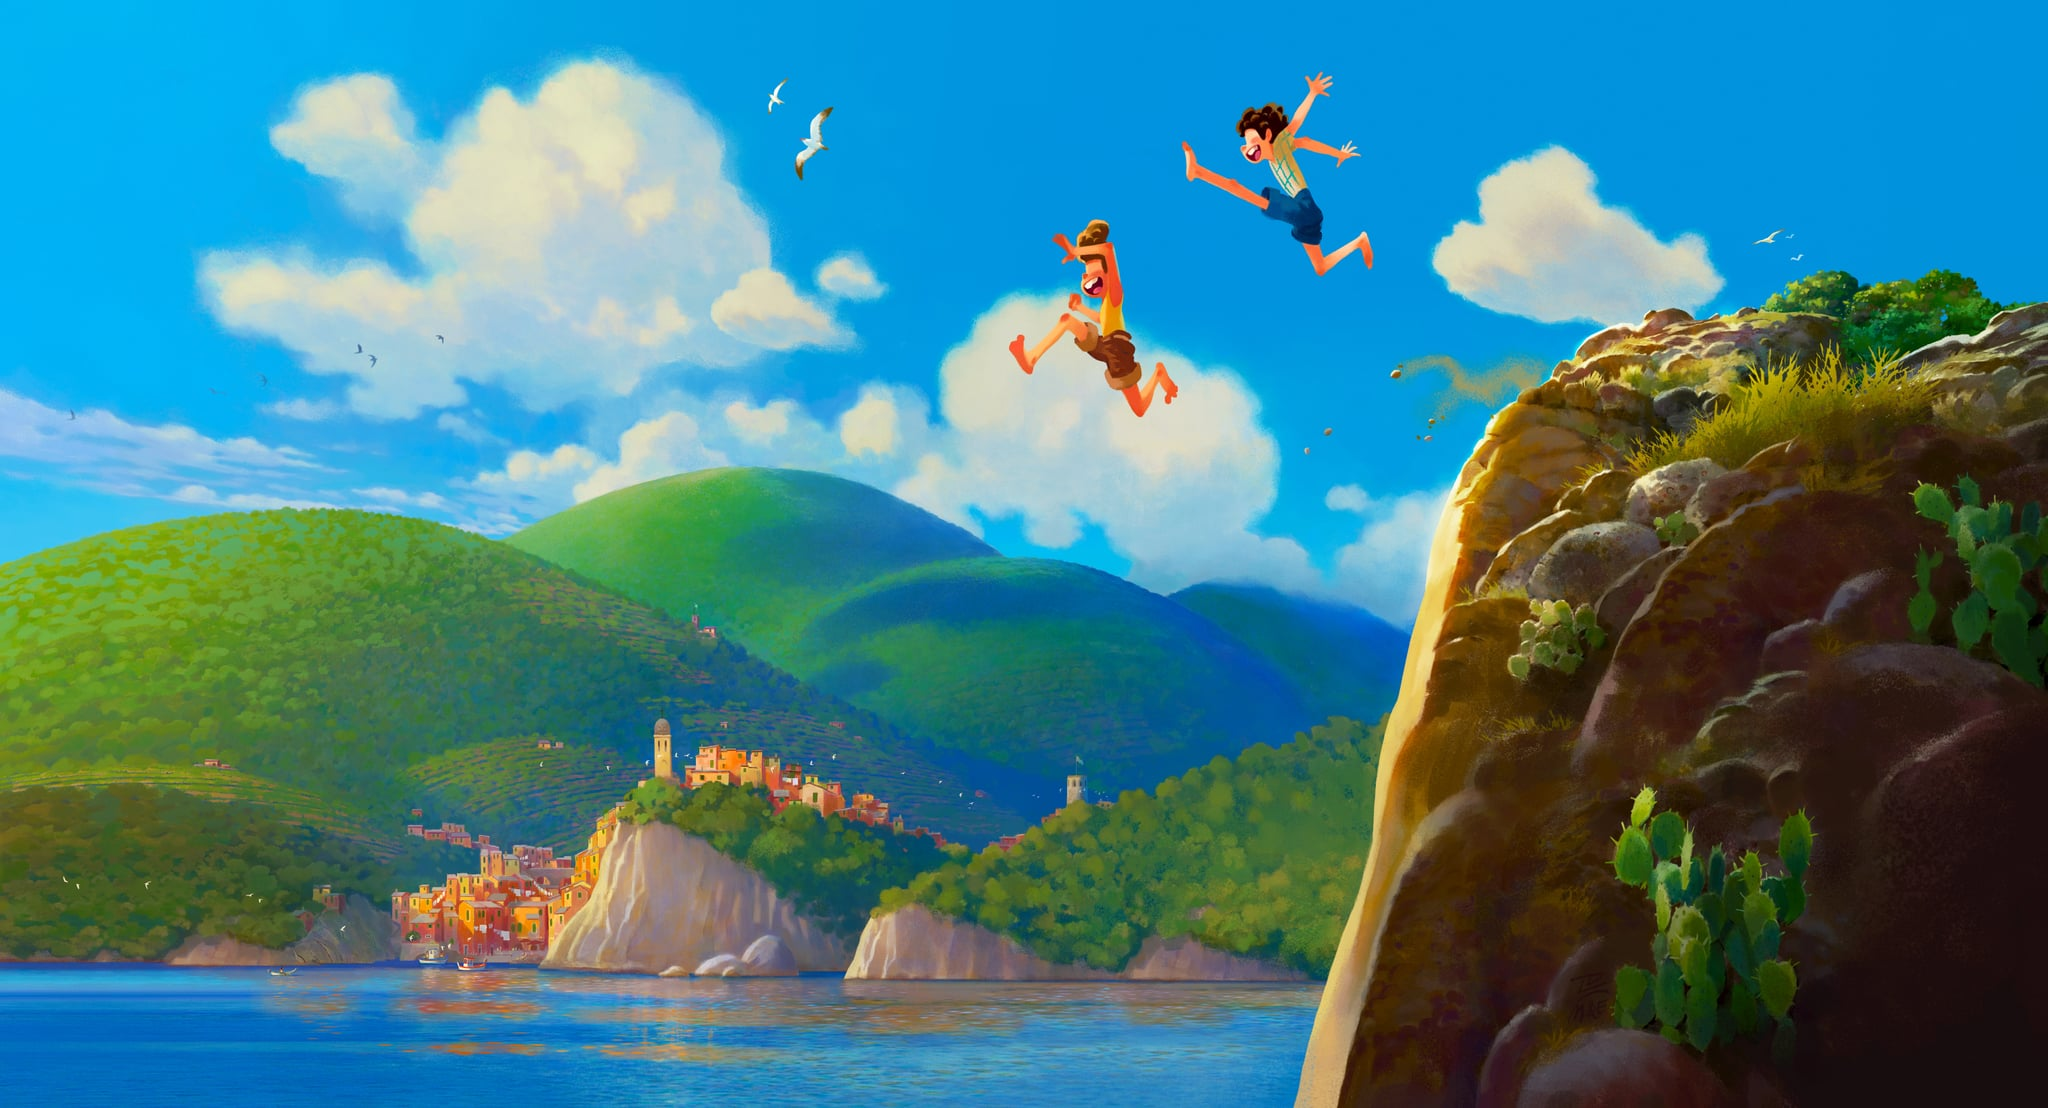 Set in a beautiful seaside town on the Italian Riviera, the Disney and Pixar original feature film,